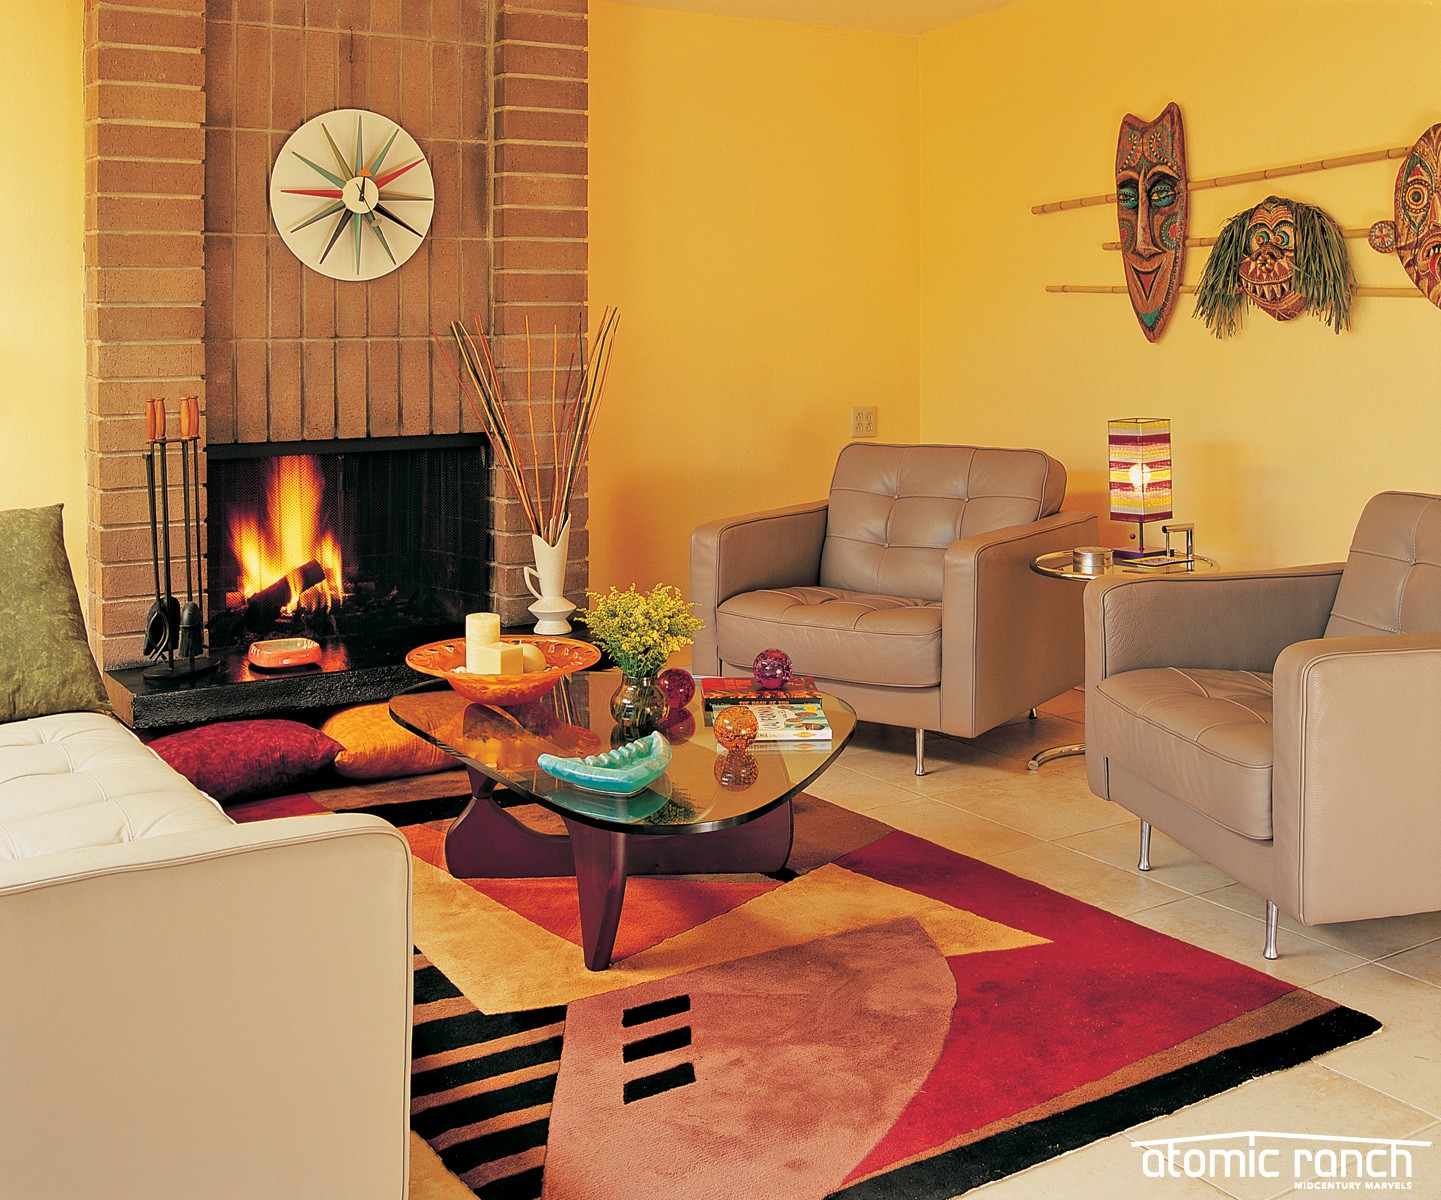 kitschy living room sofas modern love at first sight pt 3 a dash of midcentury kitsch streng bros house tour